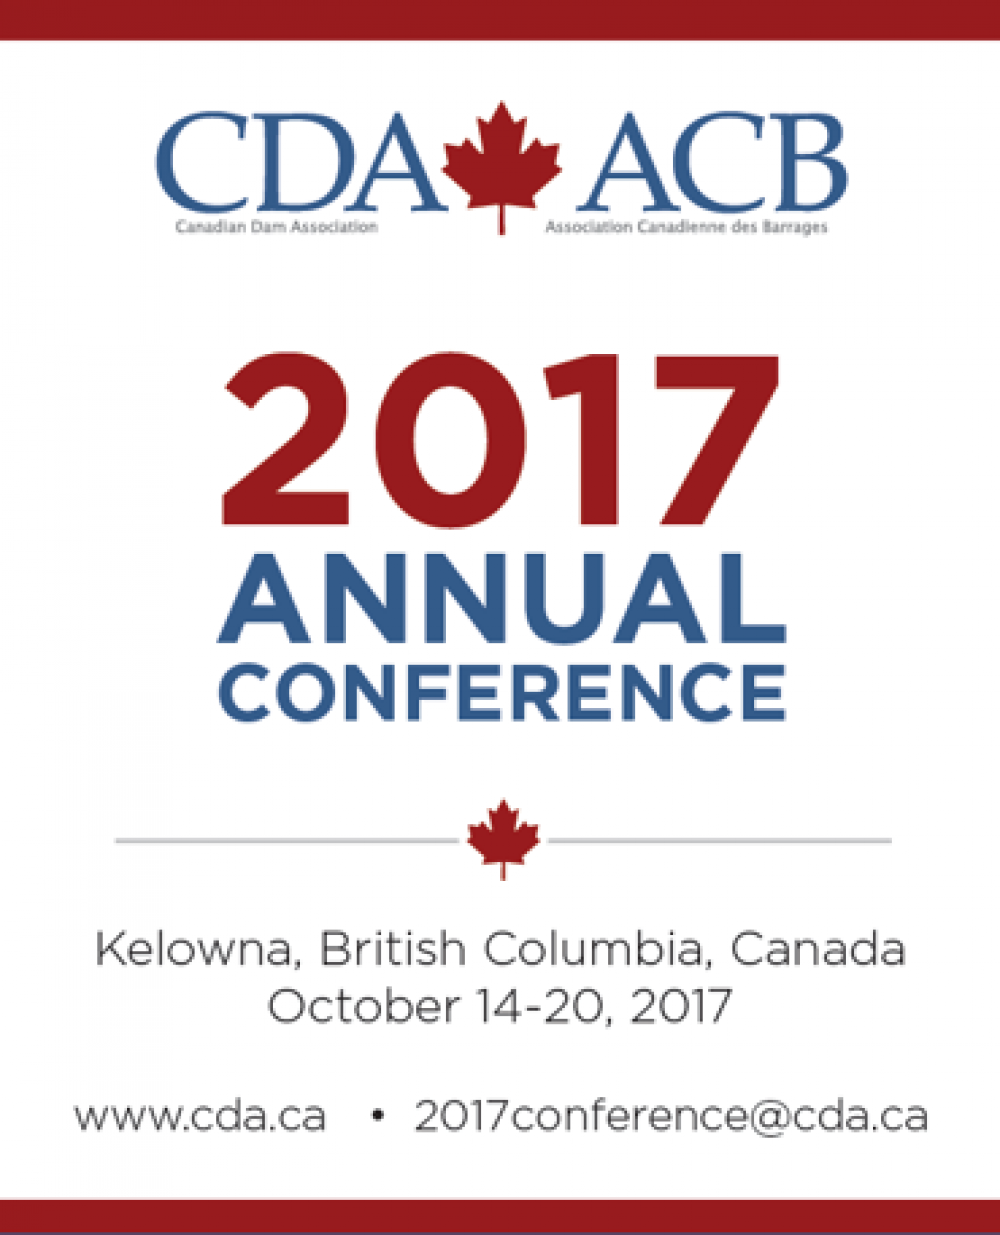 Image Canadian Dam Association 2017